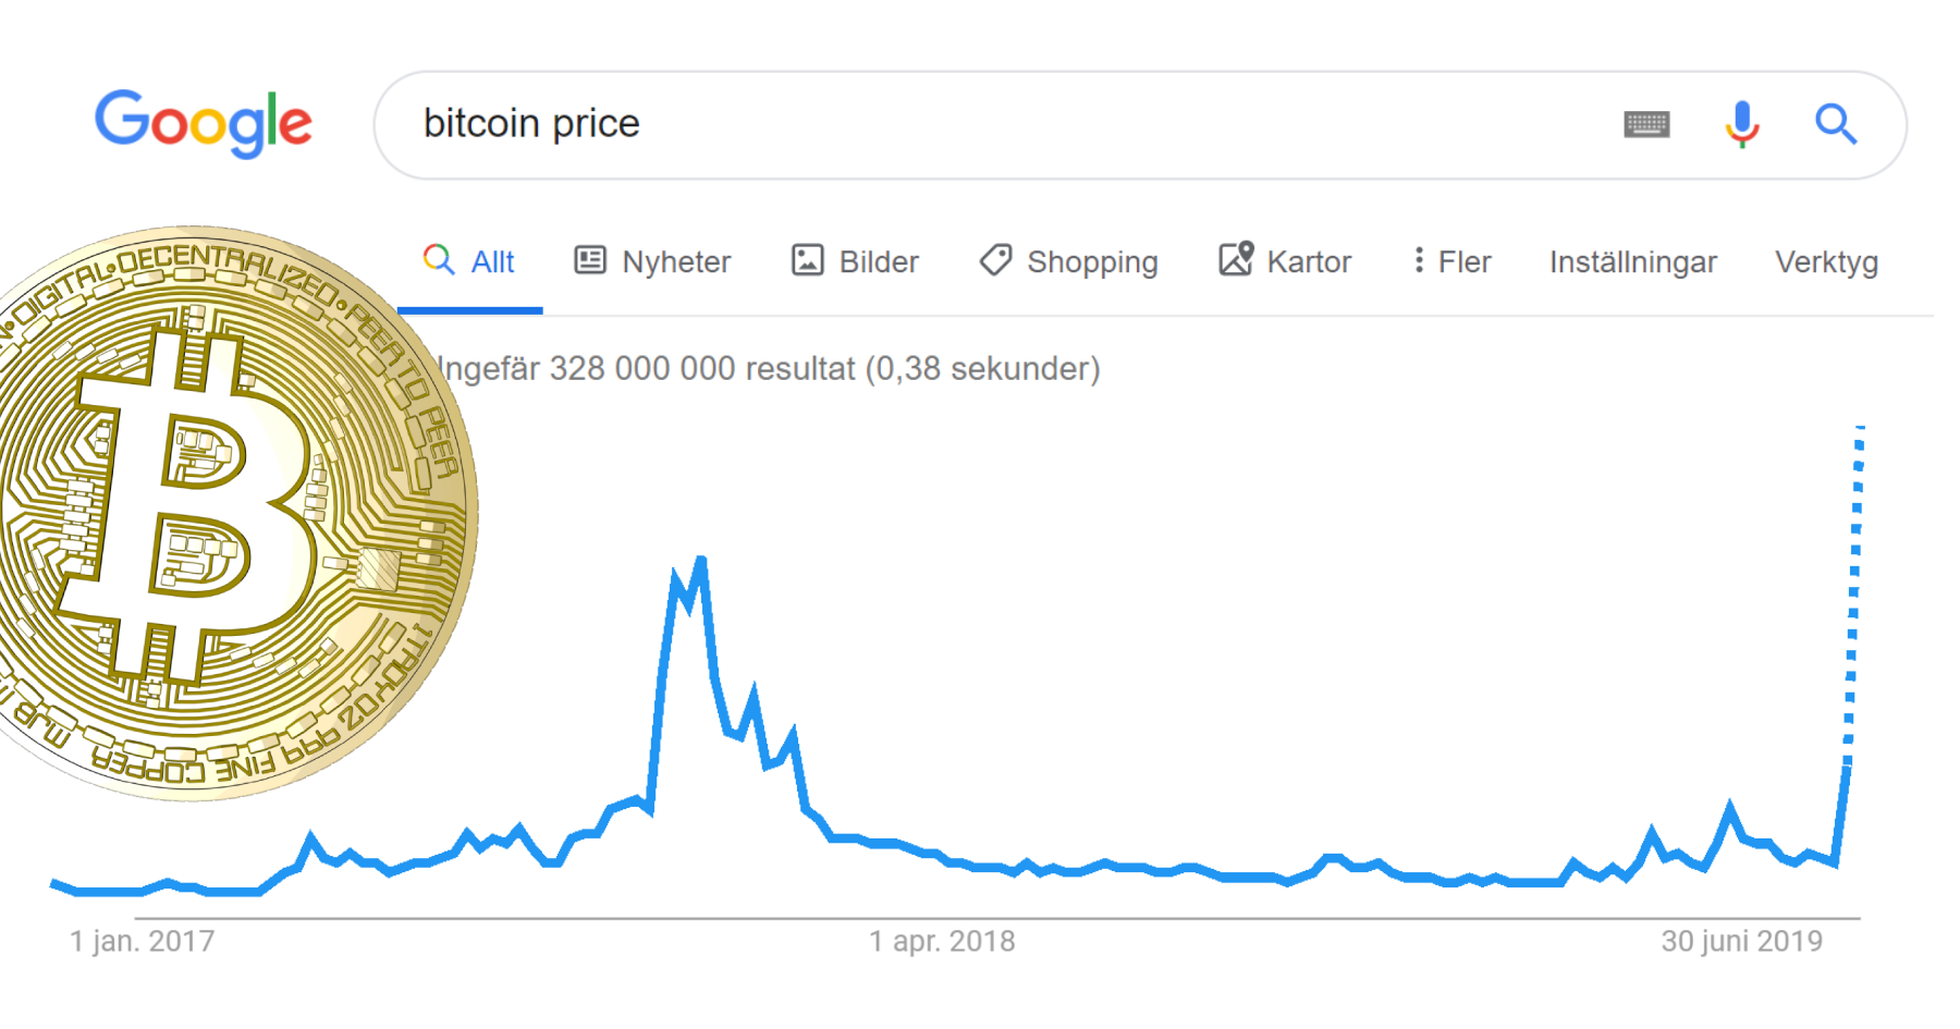 Google searches for bitcoin are going through the roof – could be manipulated.